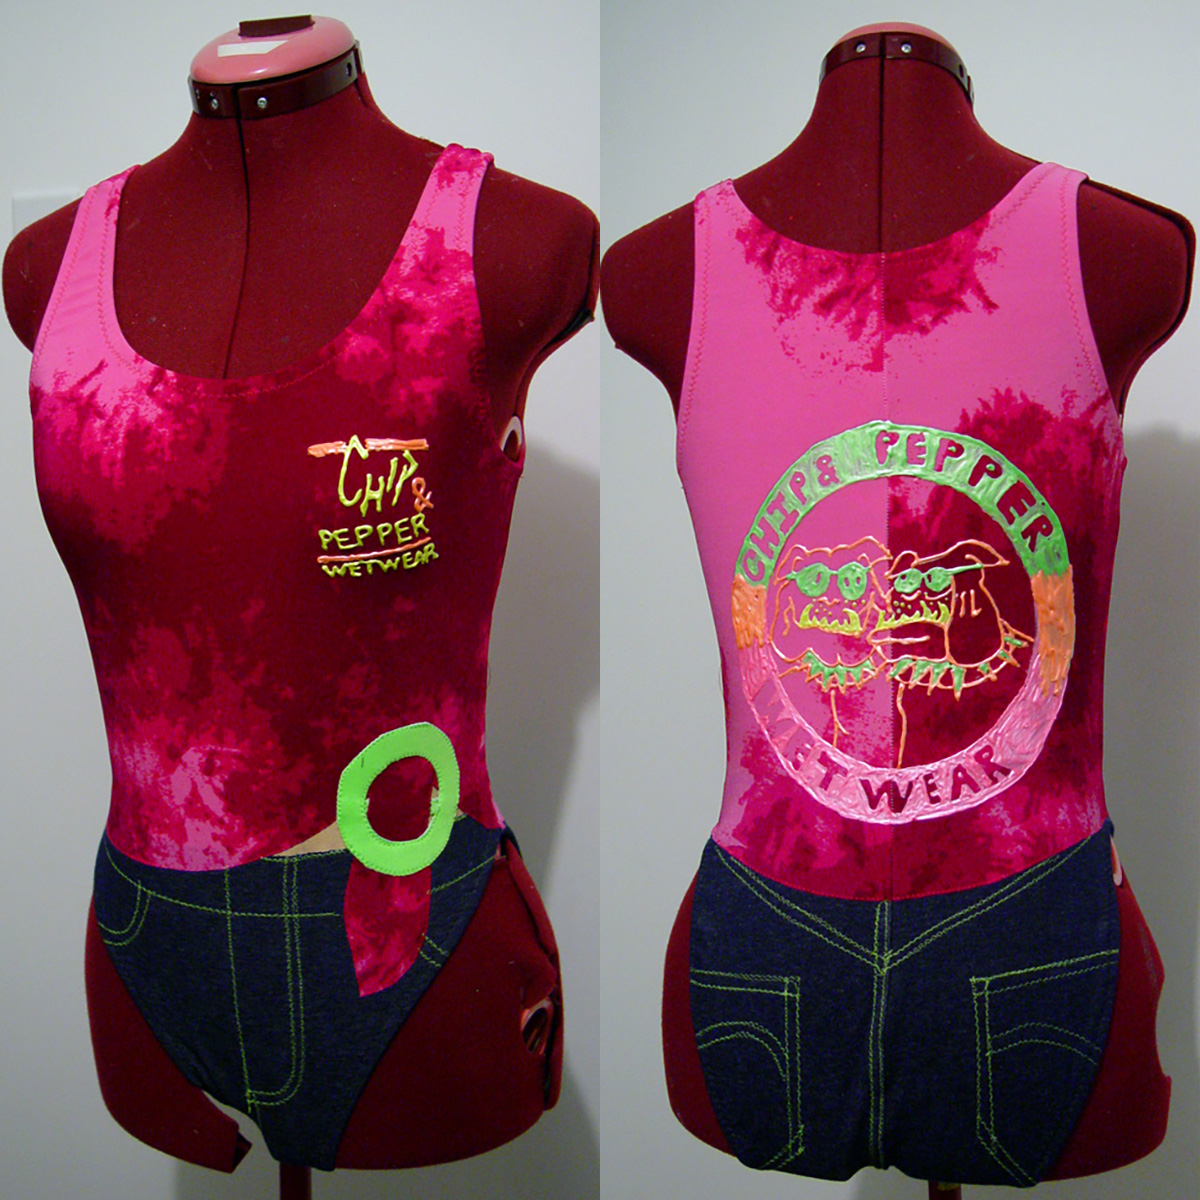 Front and back views of a swimsuit that is made to look like a tie dyed Chip & Pepper tshirt.